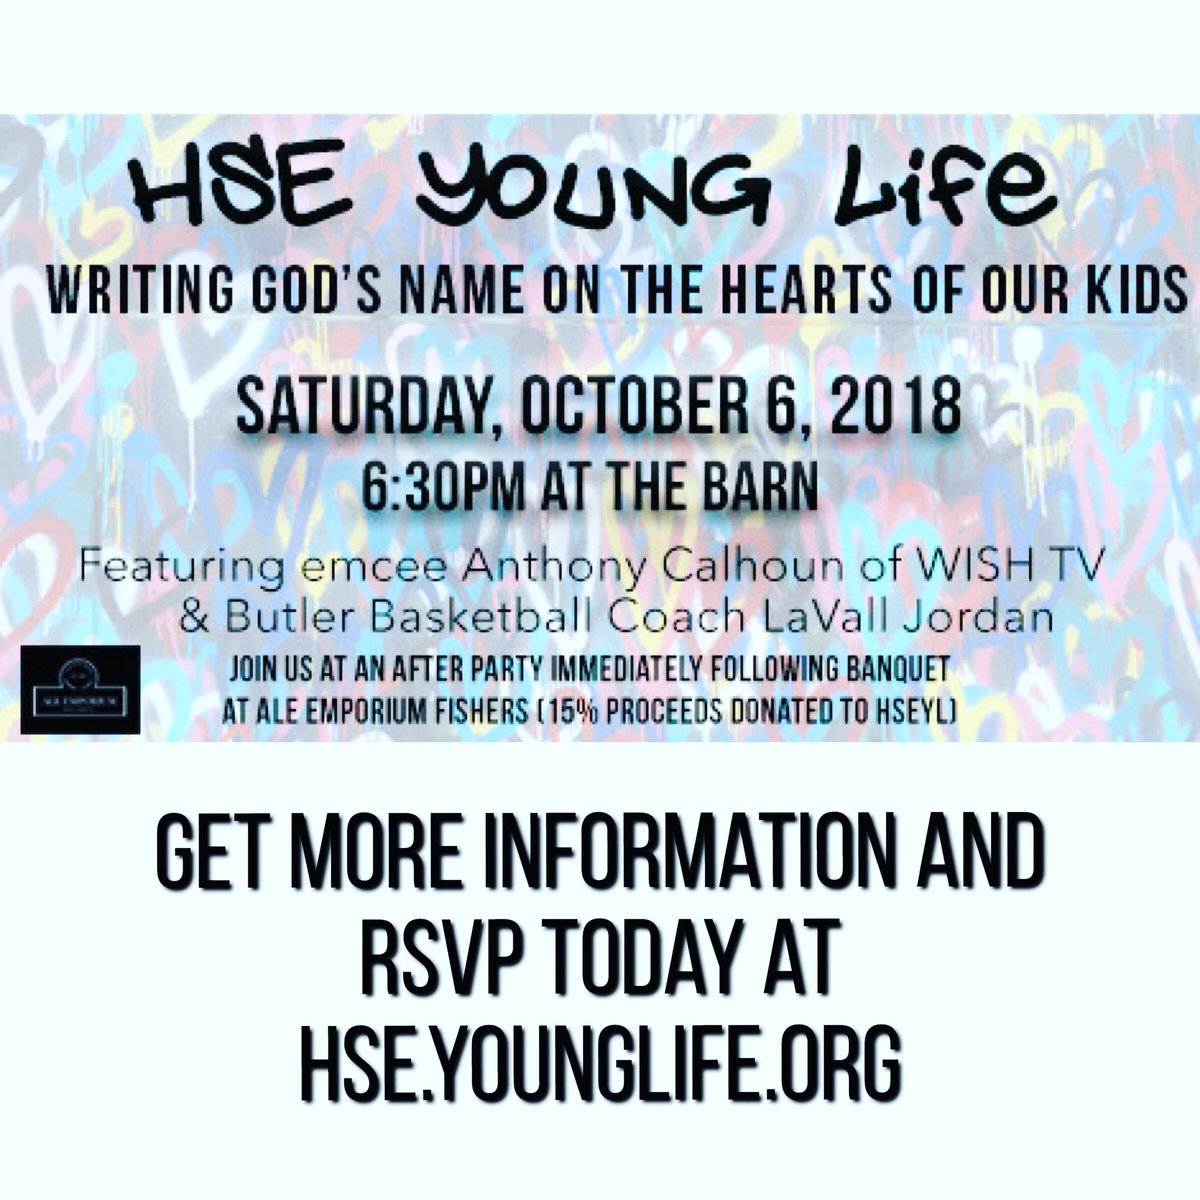 HSE Young Life (@HSEyounglife) | Twitter